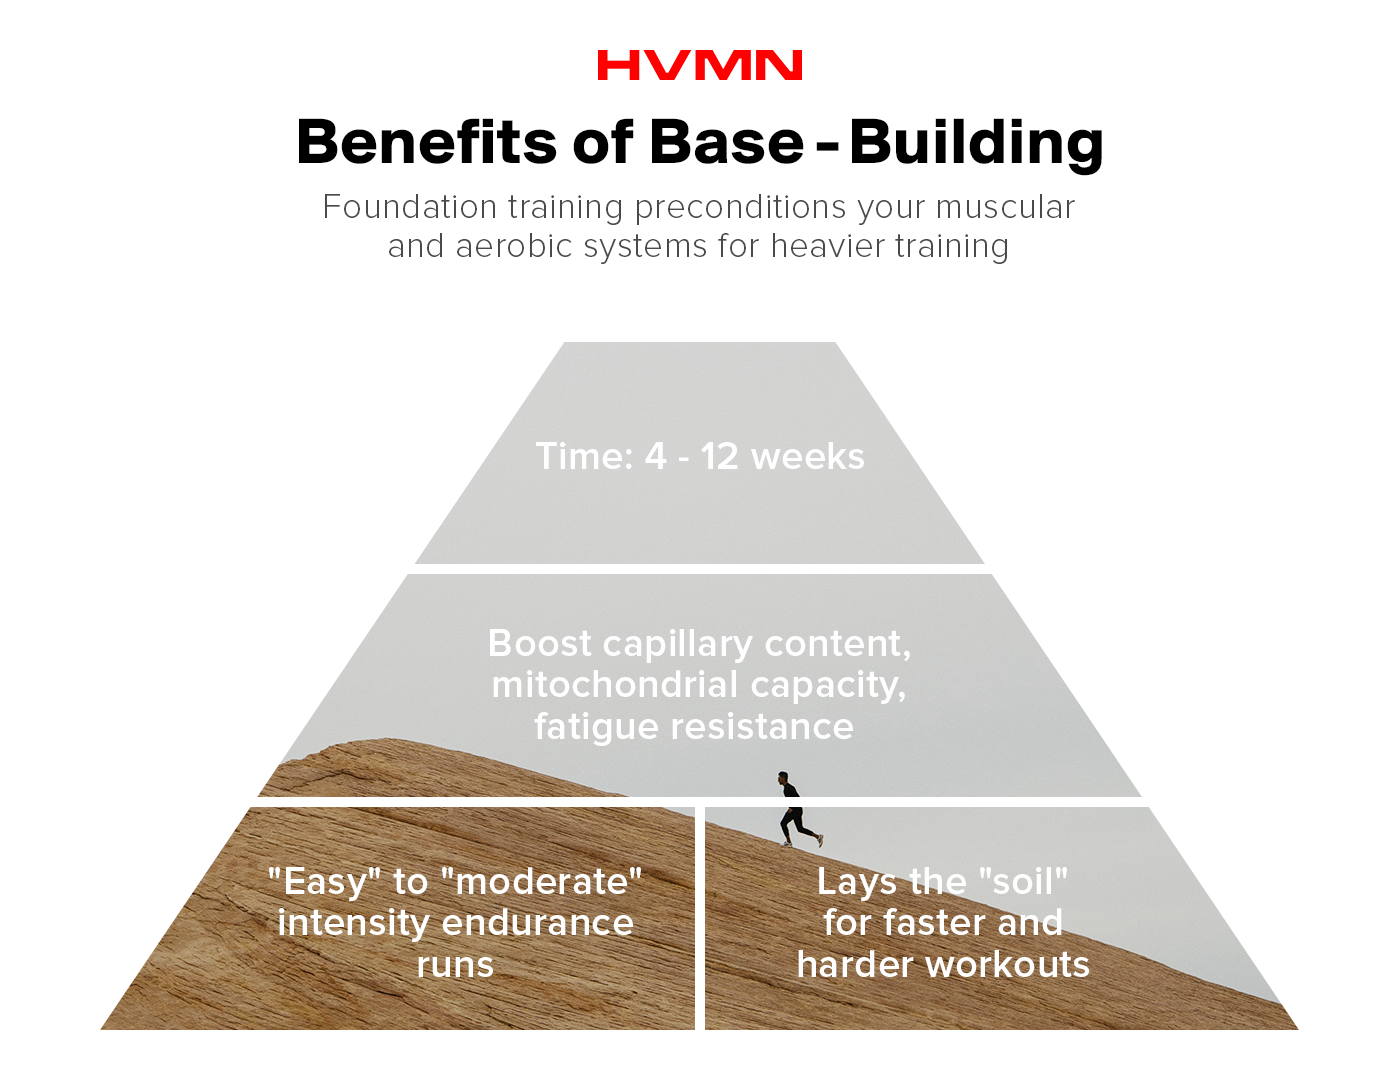 Base building is essential for a marathon training plan.